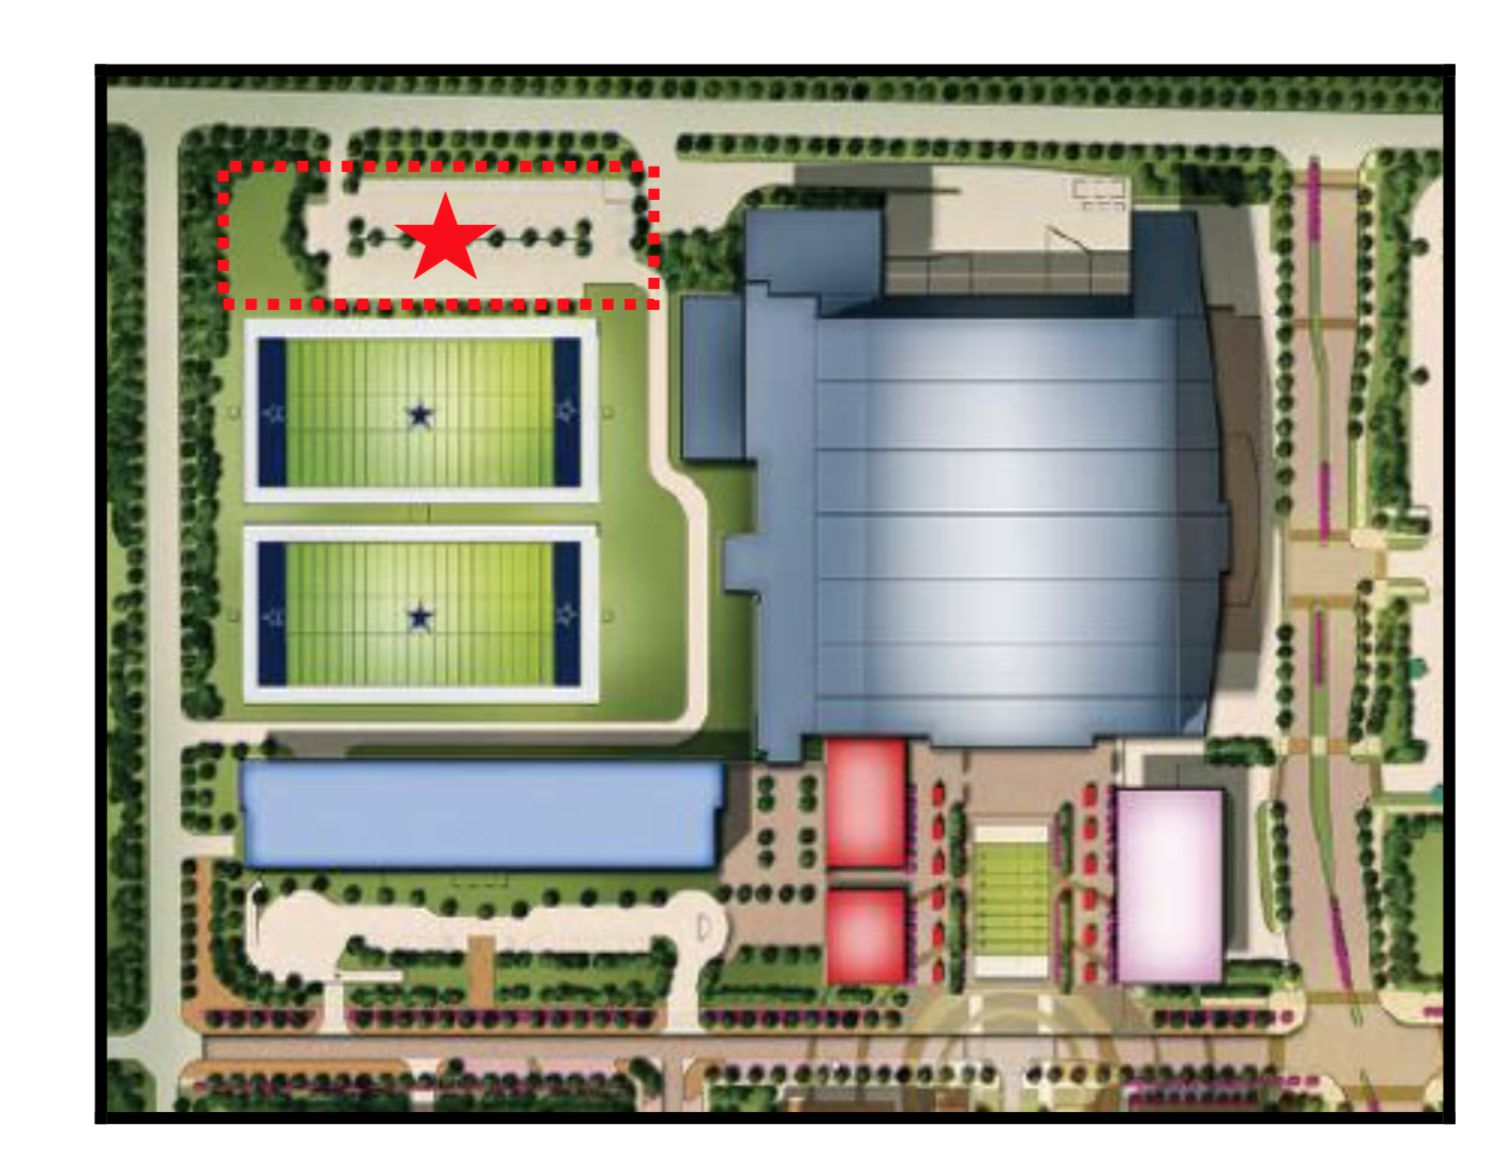 The planned office project would be constructed overlooking the Dallas Cowboy's practice fields in The Star development in Frisco.